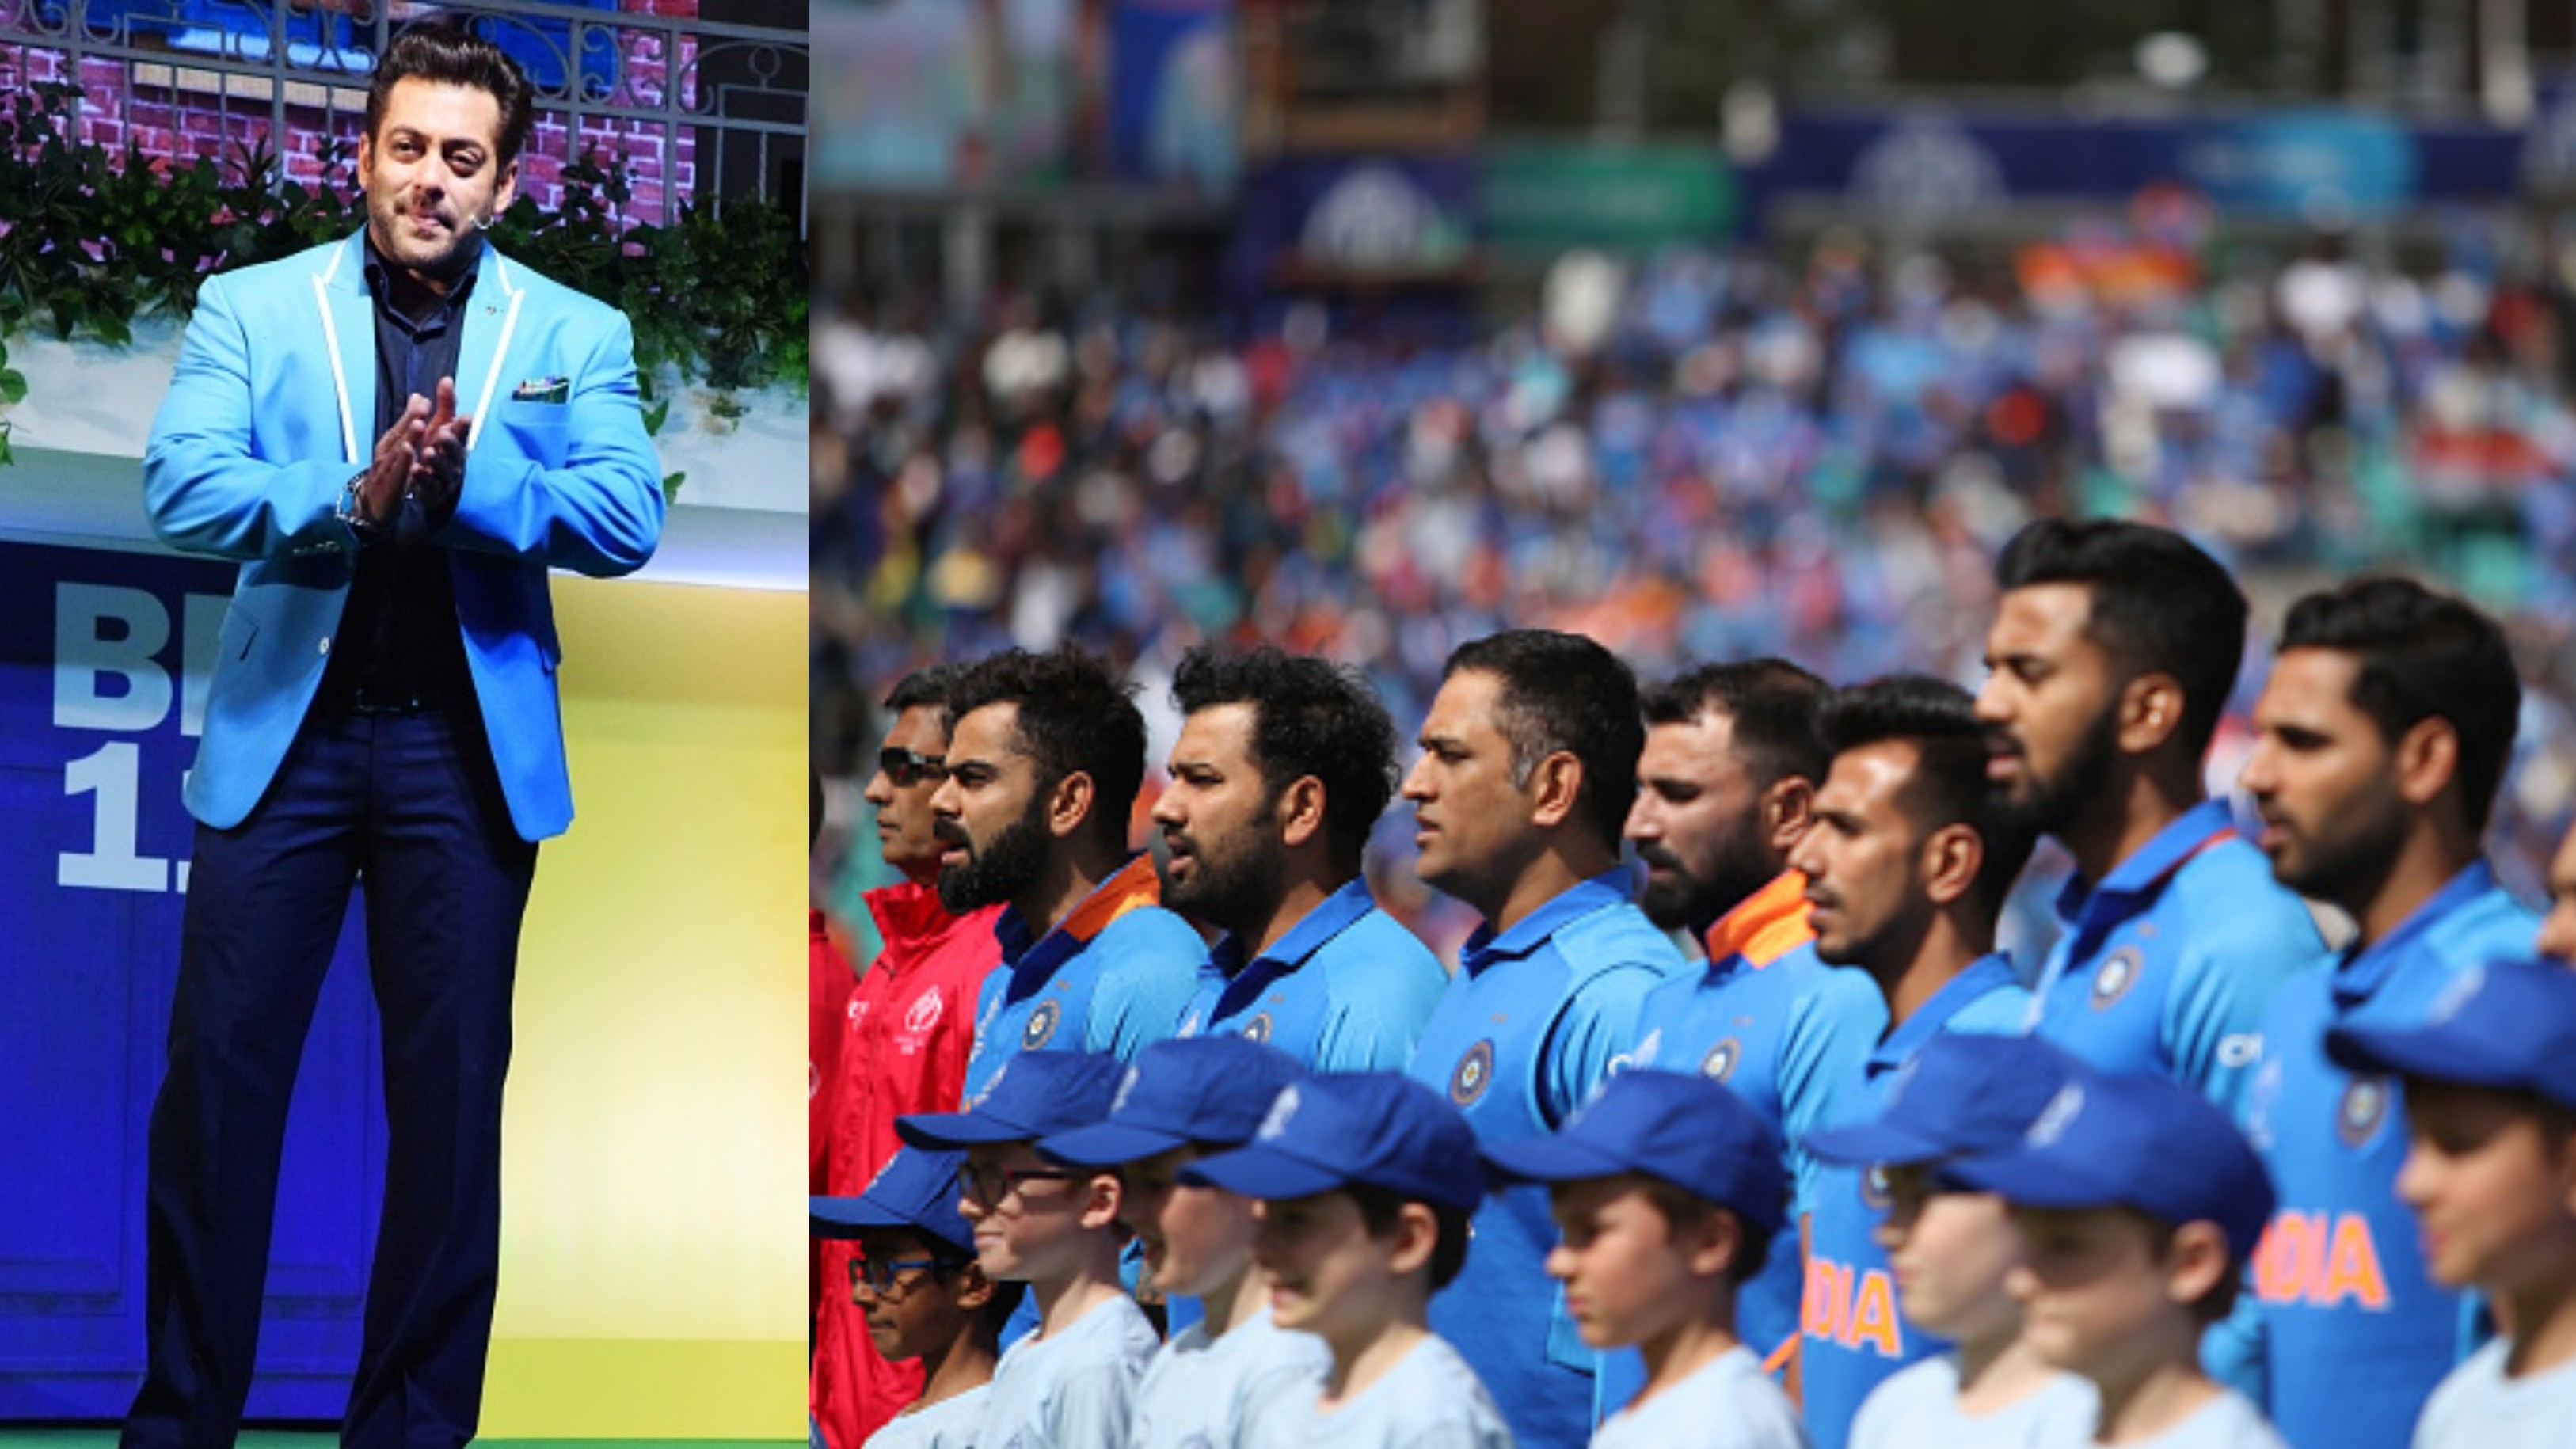 CWC 2019: Salman Khan sends best wishes for Team India for their World Cup campaign